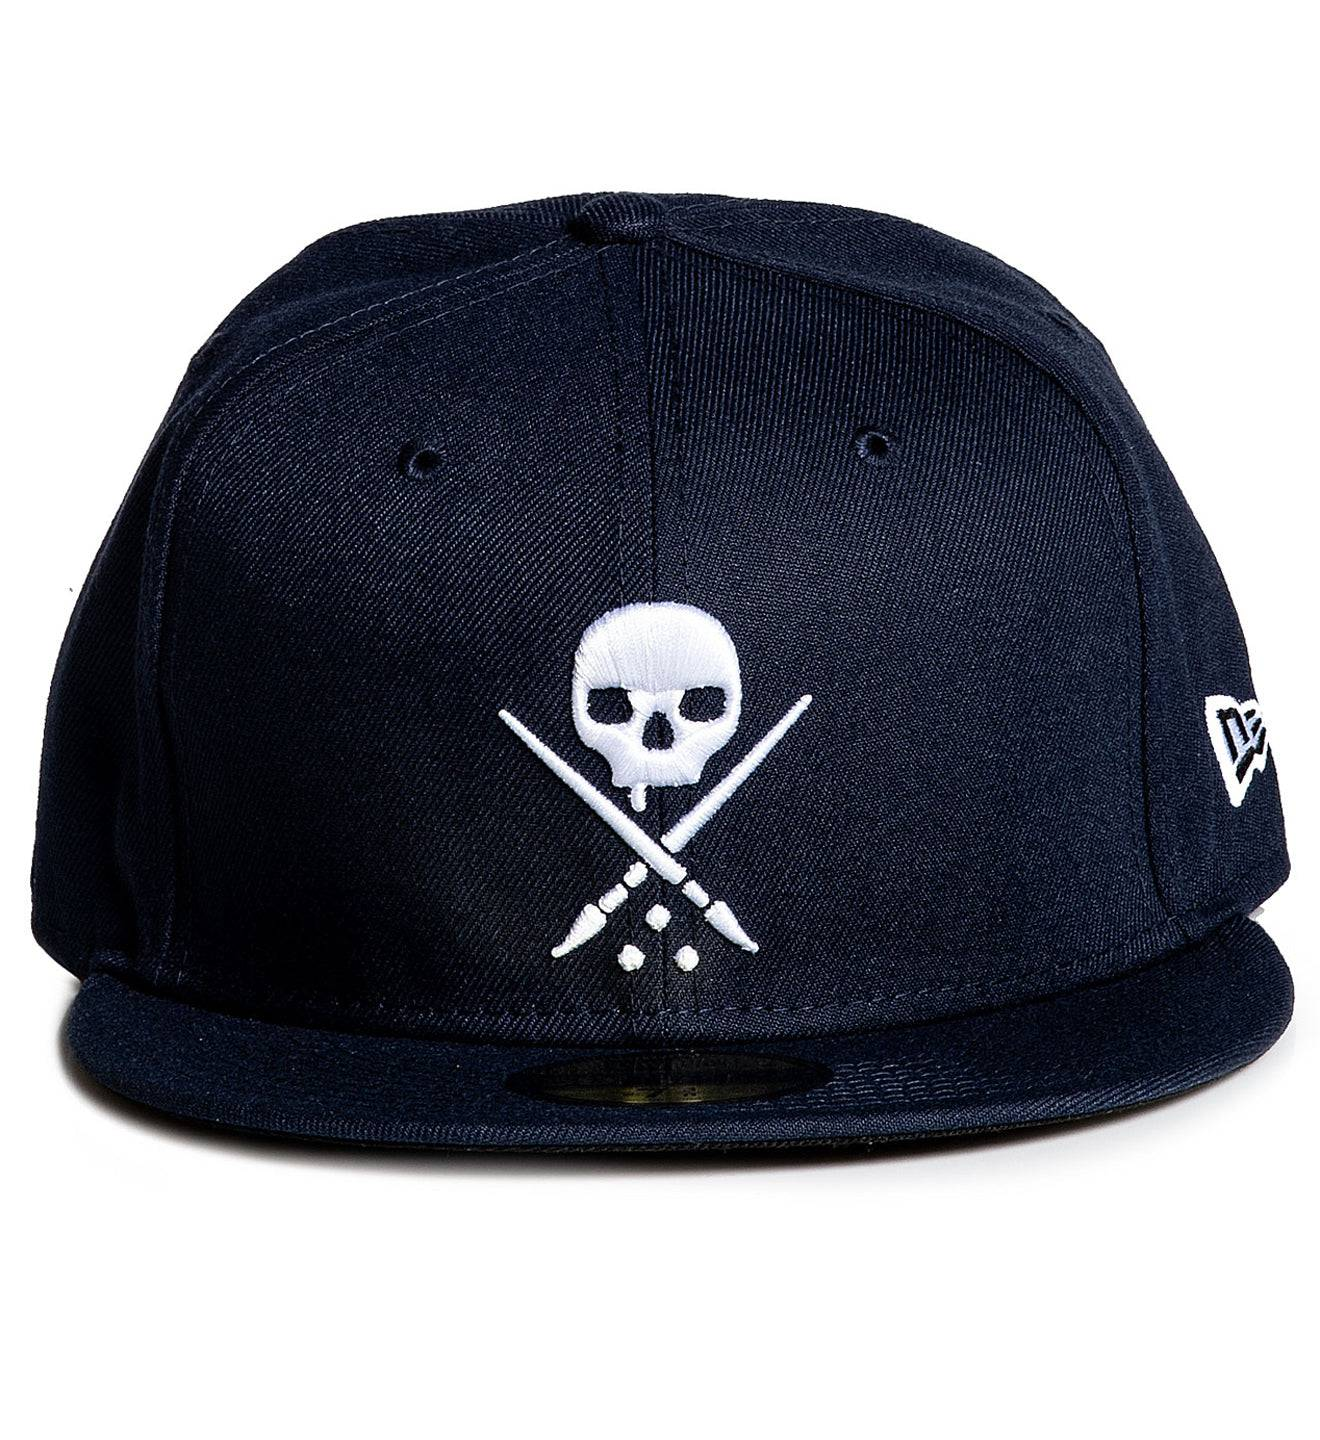 Mens Fitted Badge Navy, NAVY / 71/4